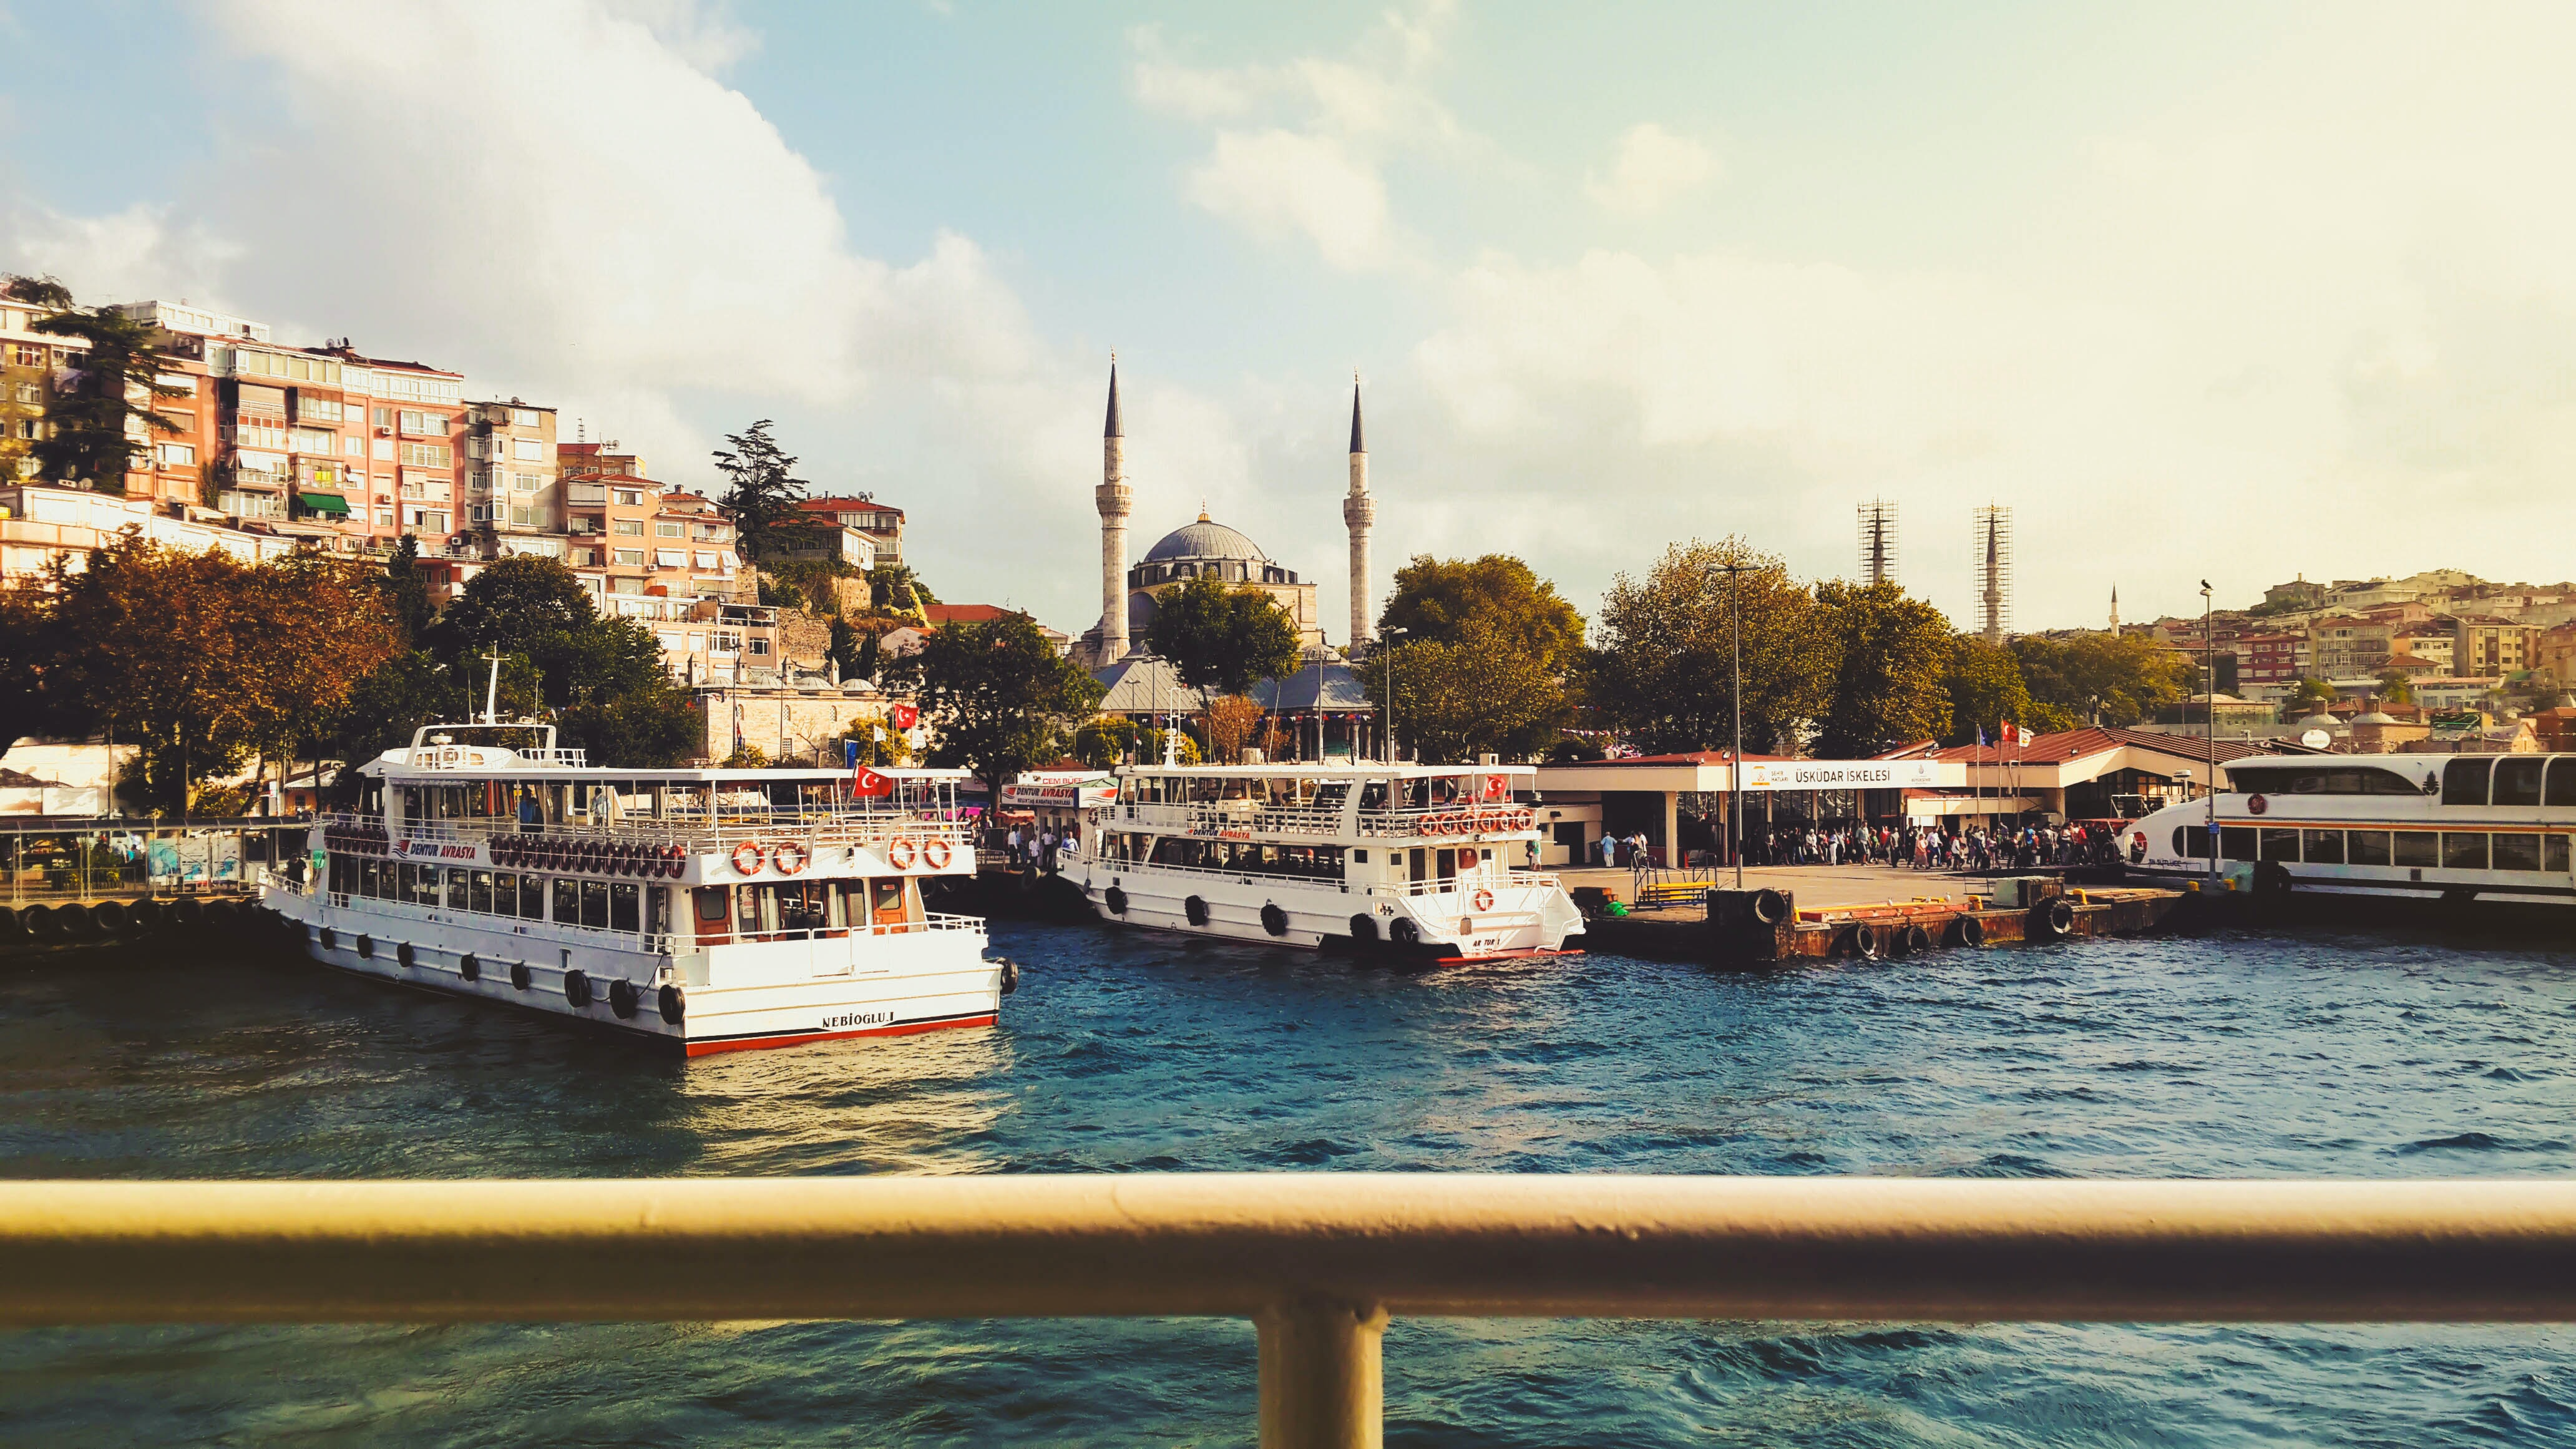 Three boats lined up by a pier in Istanbul, Turkey